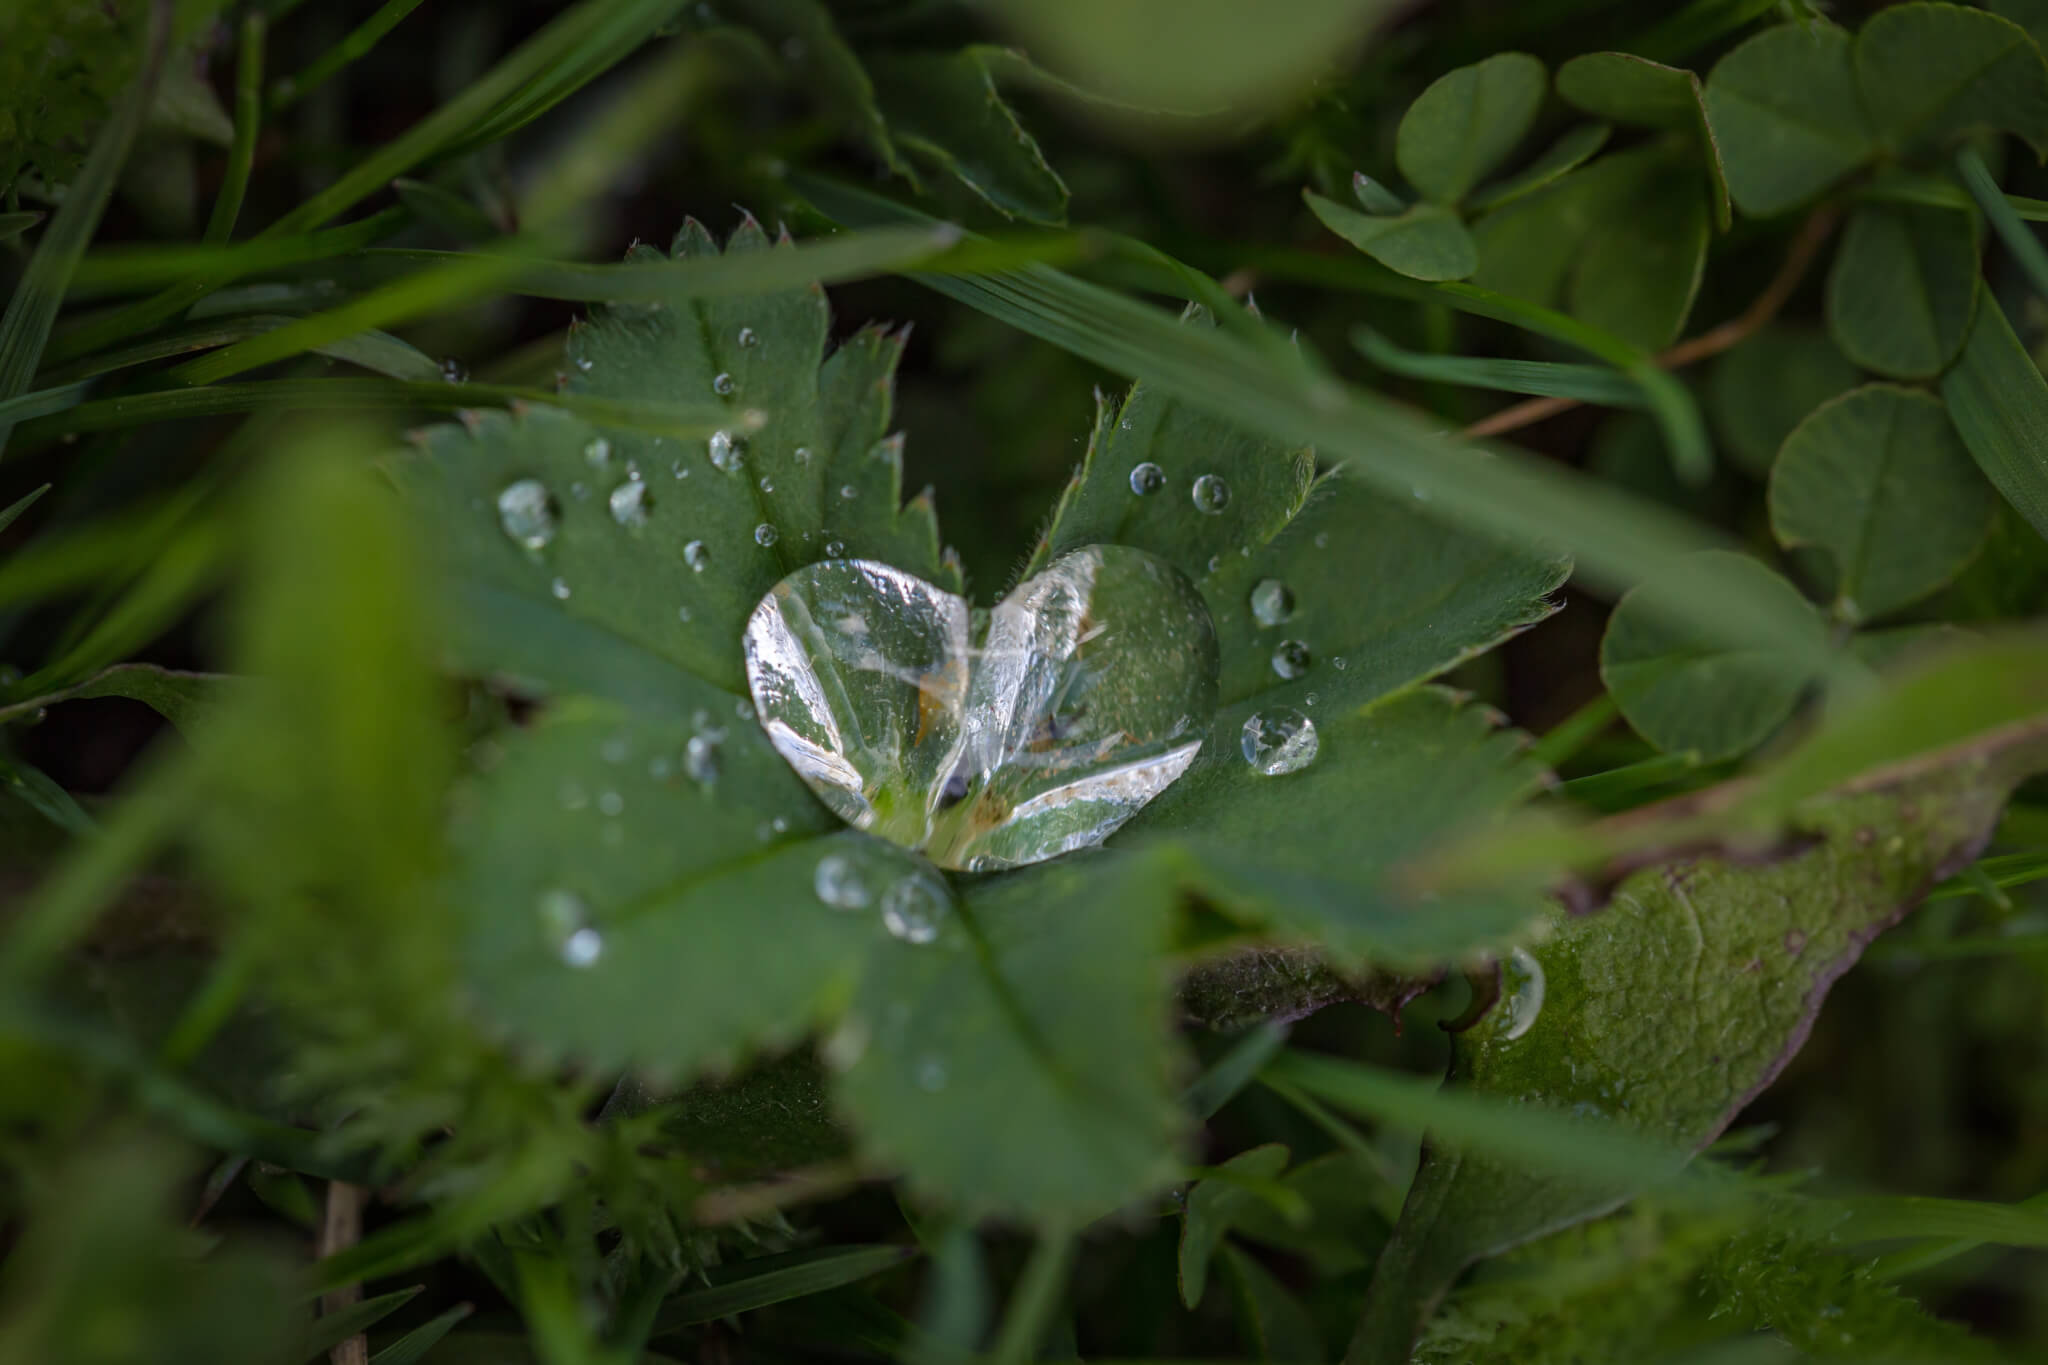 Leaf with heart-shaped dew drop